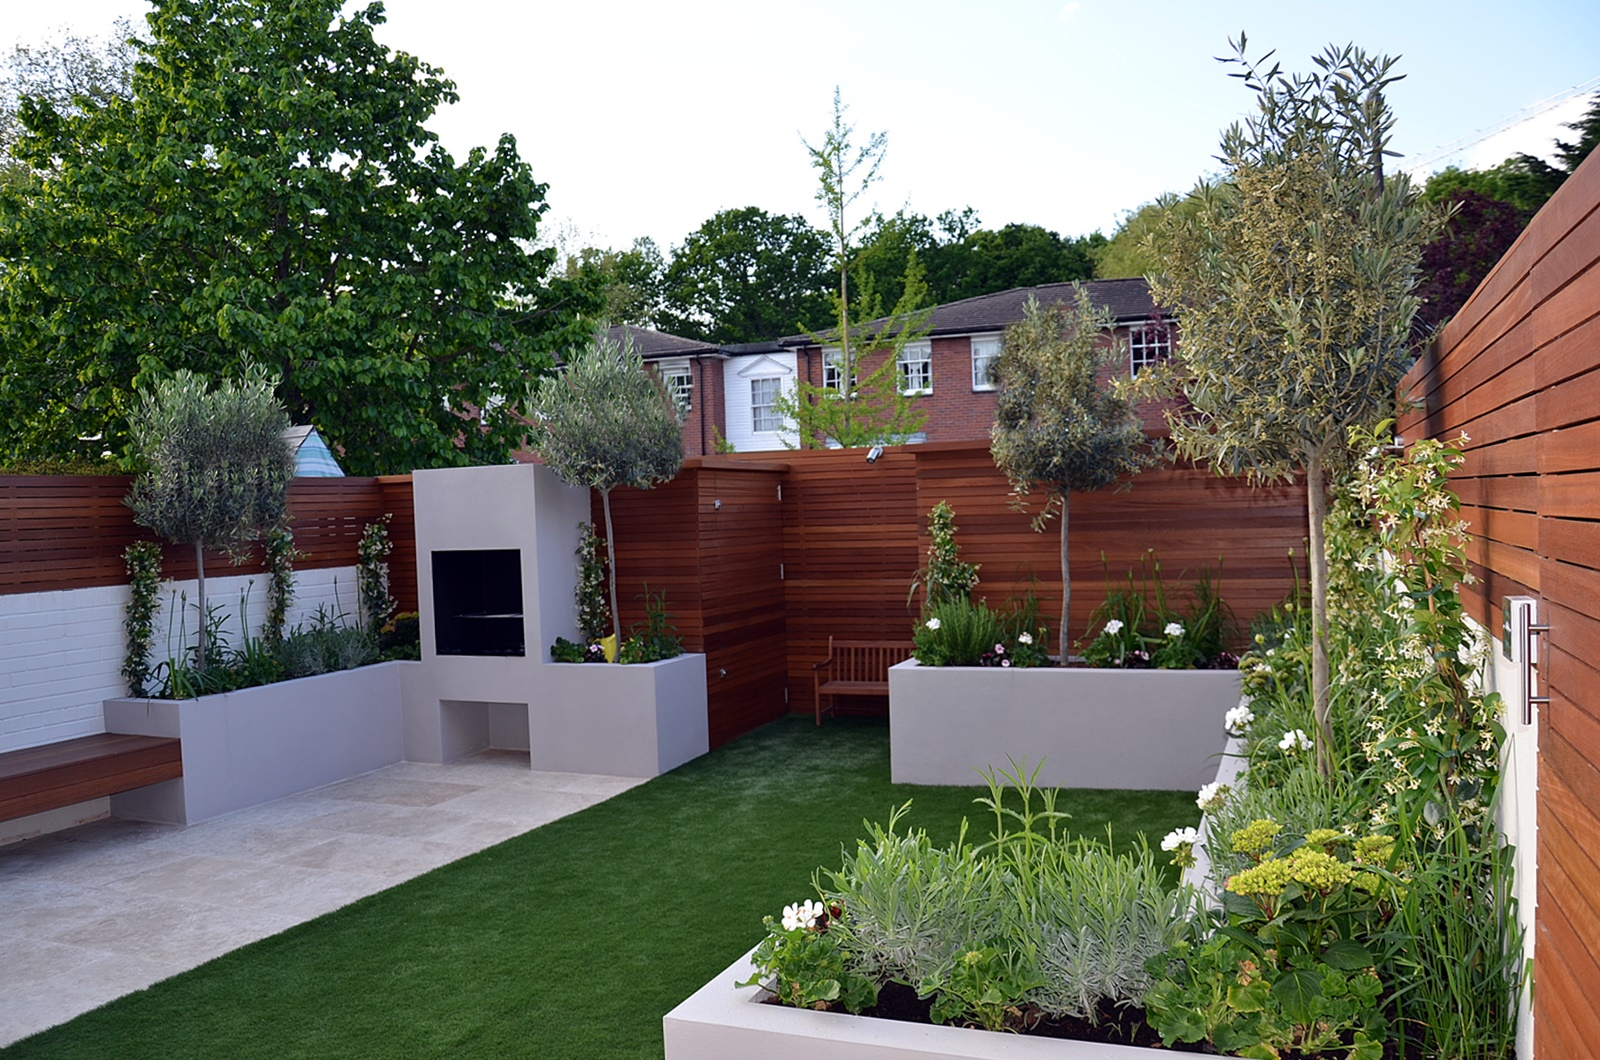 contemporary hardwood screen fence trellis slatted BBQ fireplace raised beds artificial grass cream paving london